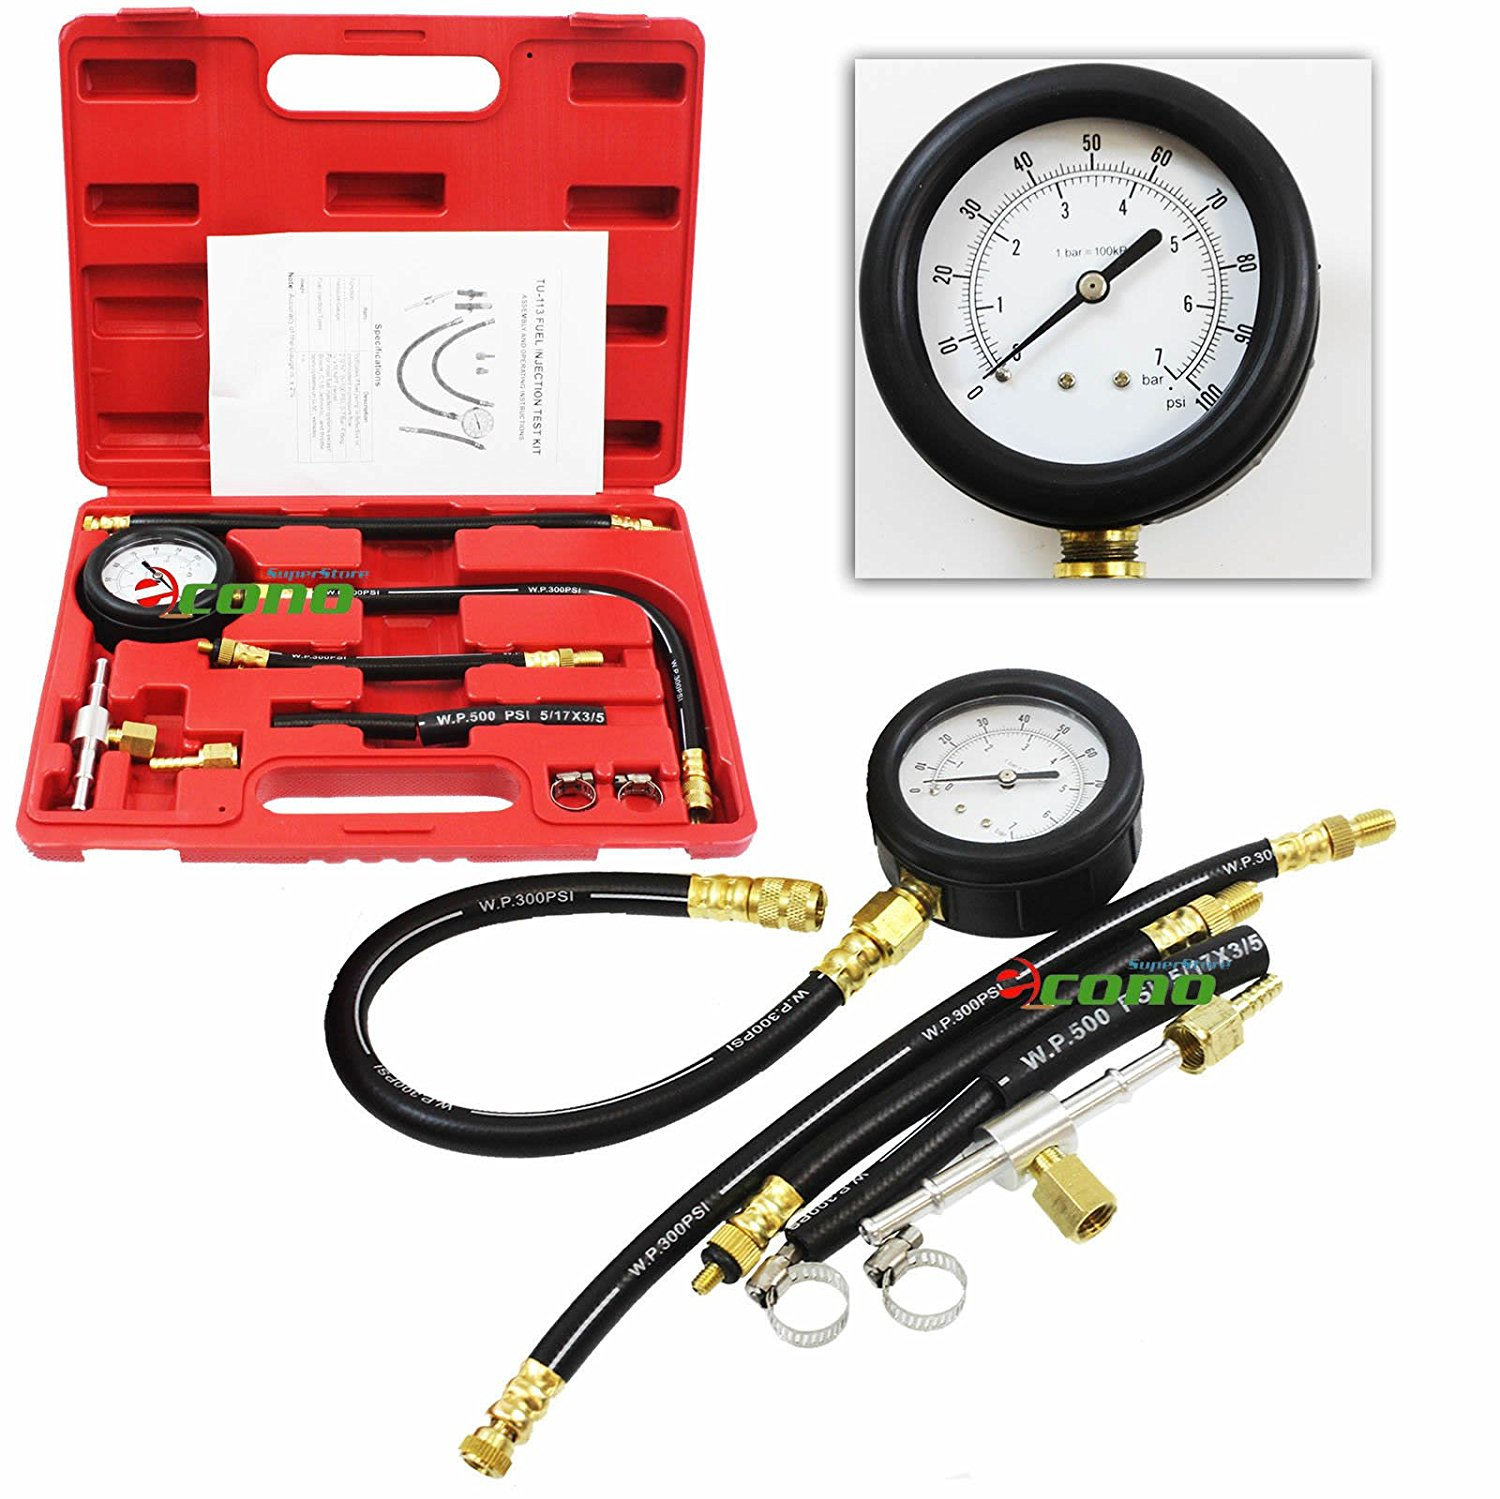 Cheap Repair Fuel Injection Pump Find Cav Diagram On Perkins Get Quotations Injector Tester Gas Combustion Spary Pressure Gauge Diagnost